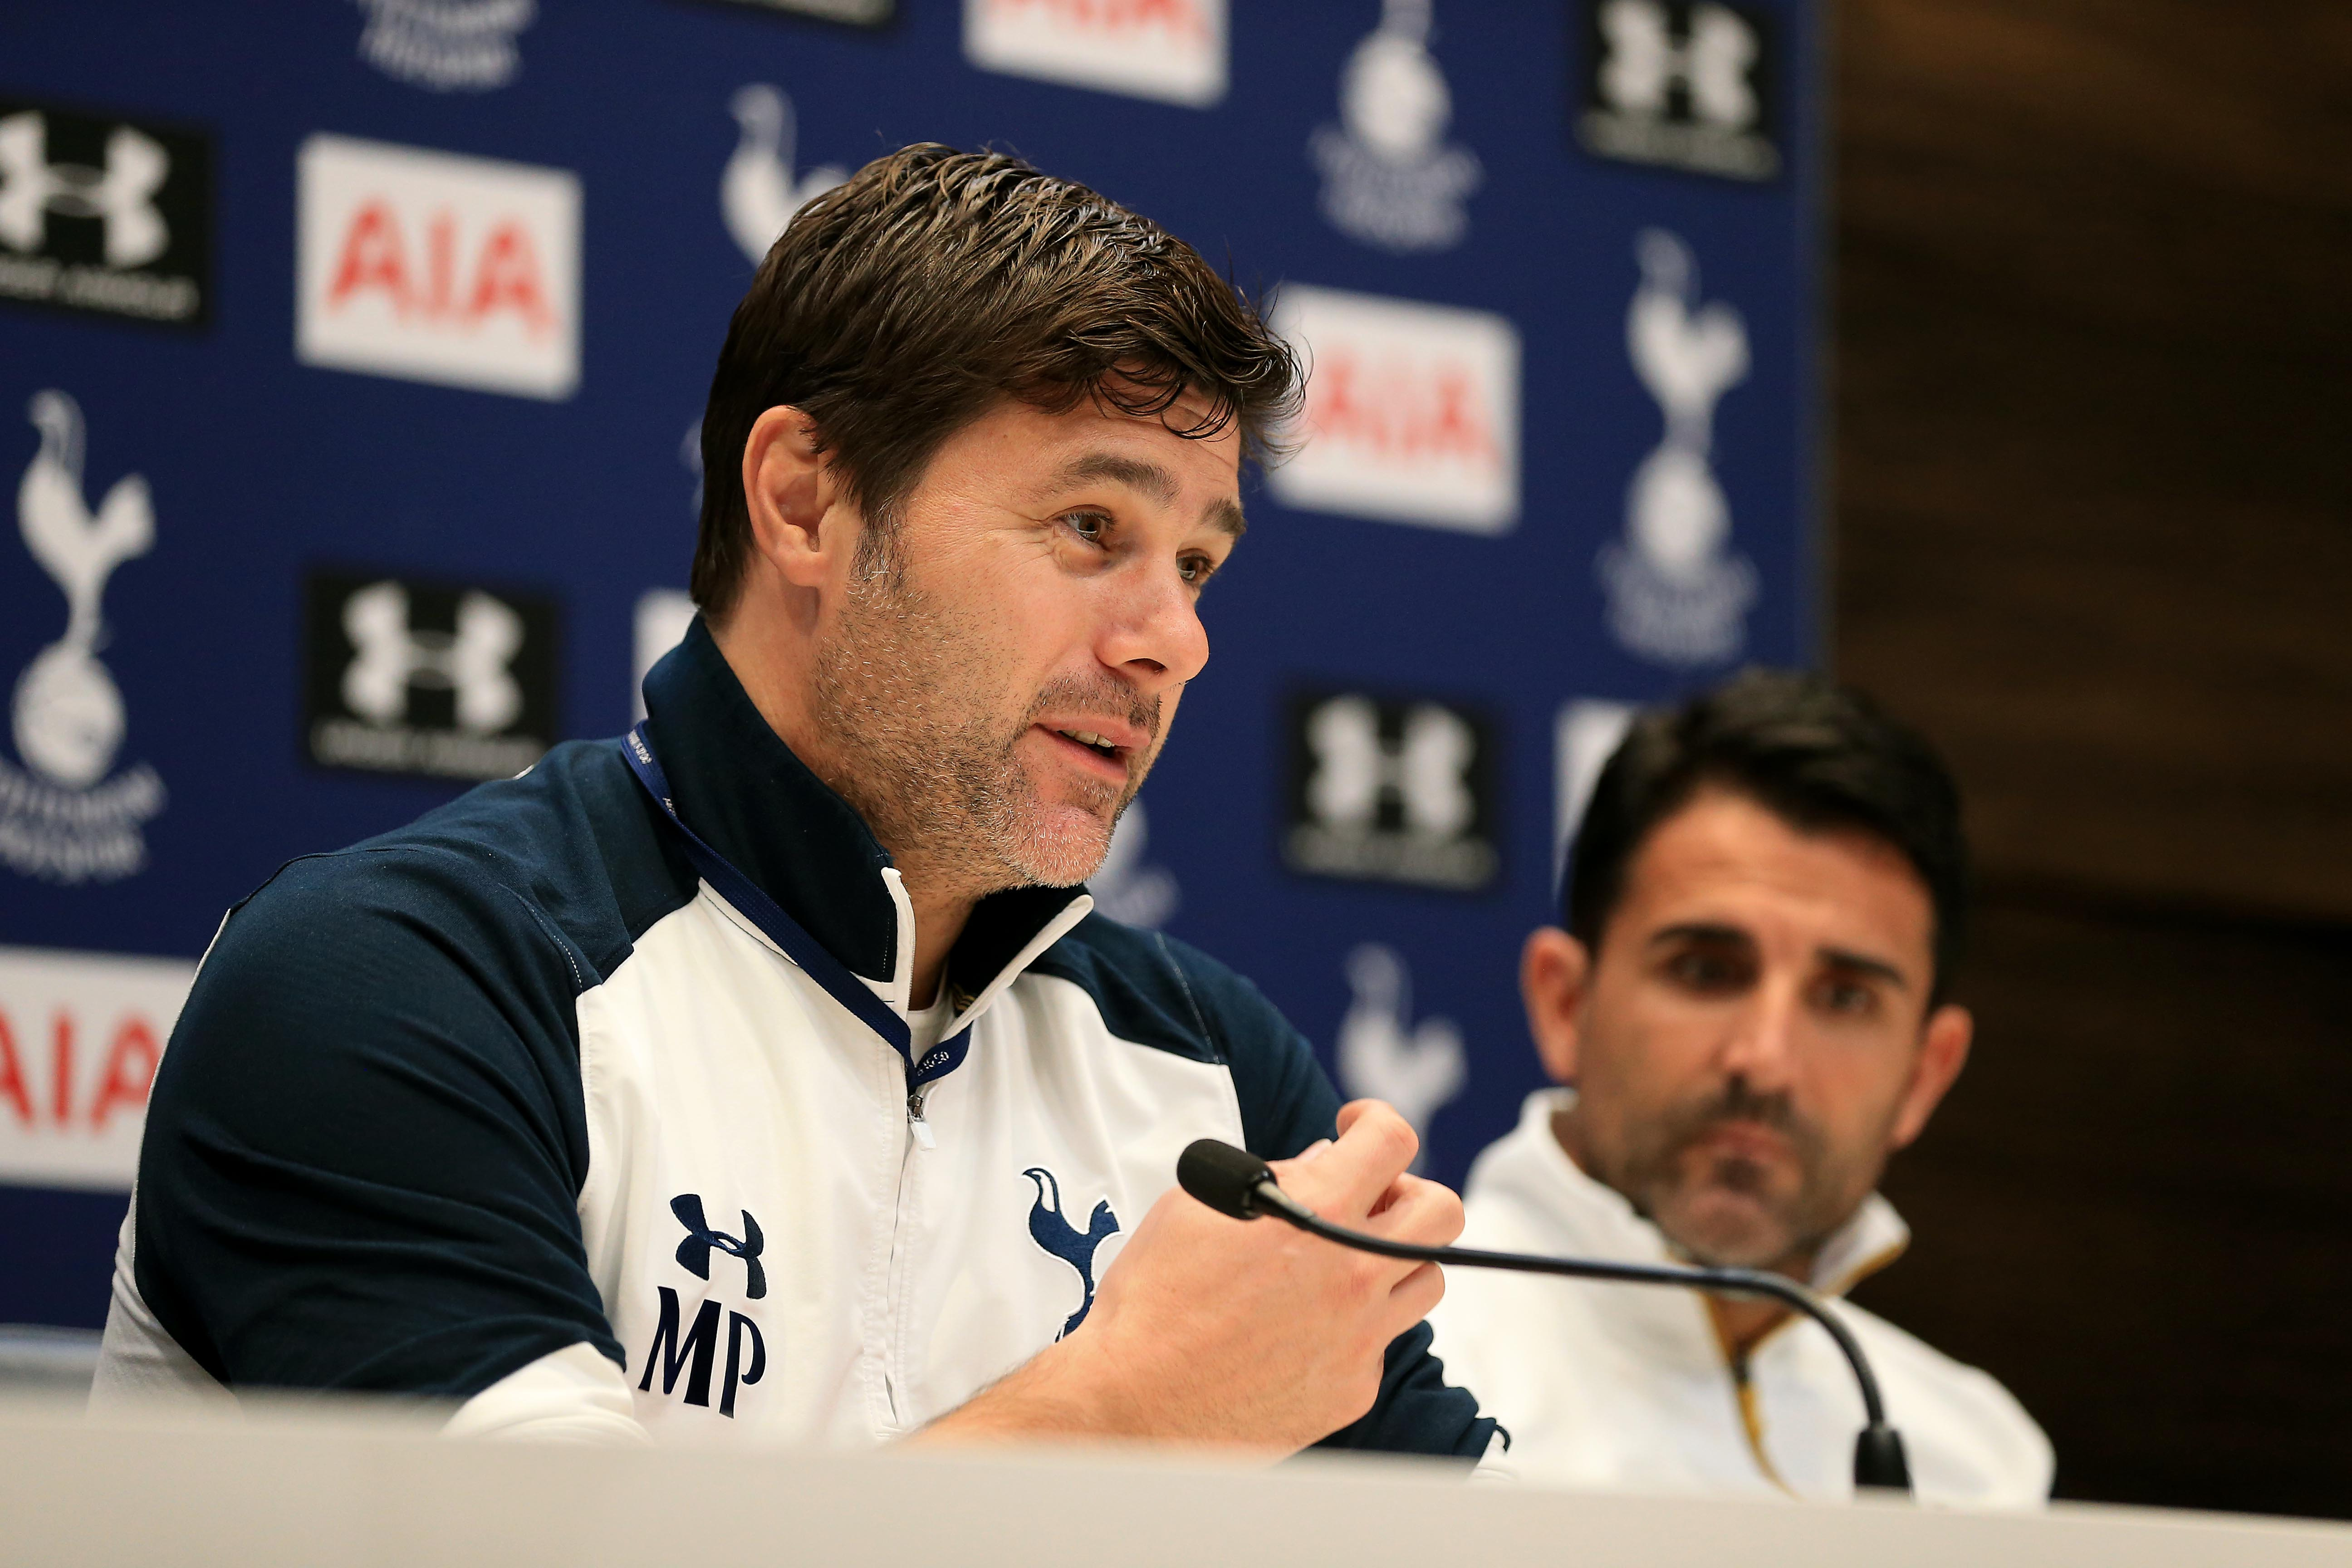 621061764-tottenham-hotspur-training-session